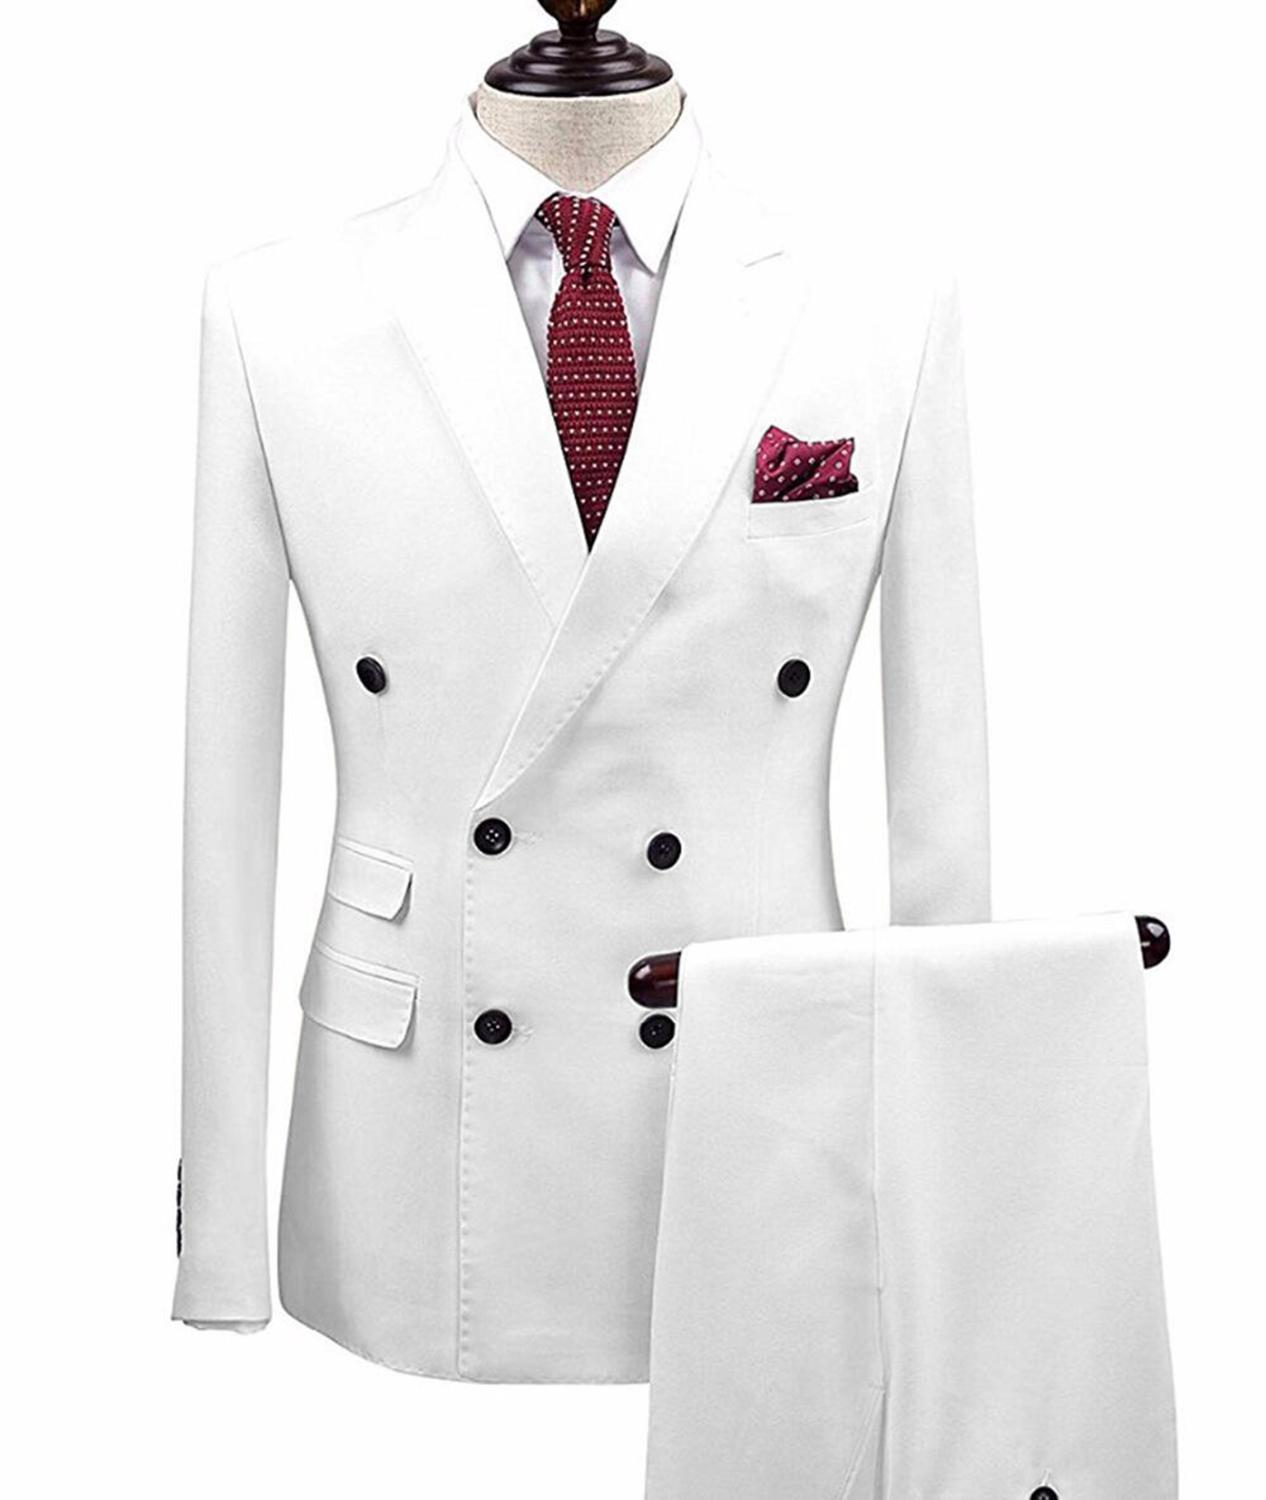 Mens Suits Slim Fit 2 Pieces Business Groom Double-breasted Jacket Tuxedos White Blazer For Wedding Prom Evening(Blazer+Pants)